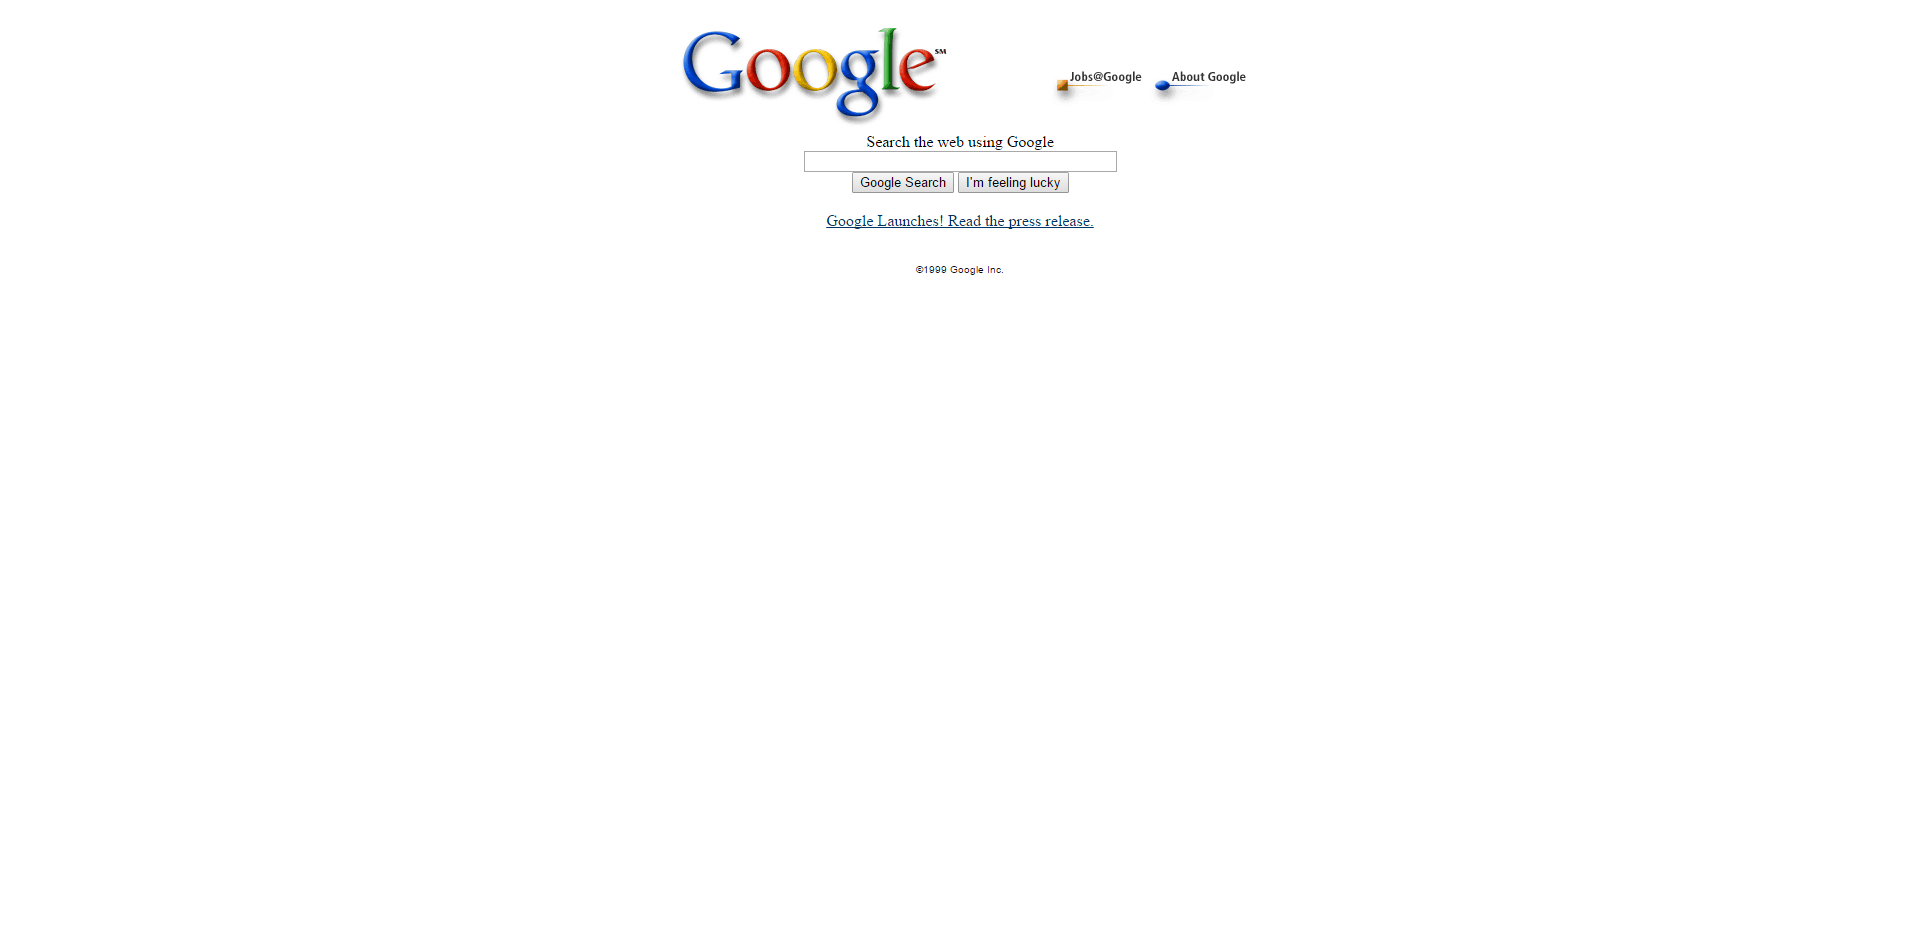 Google homepage 12 October 1999 different weird post.